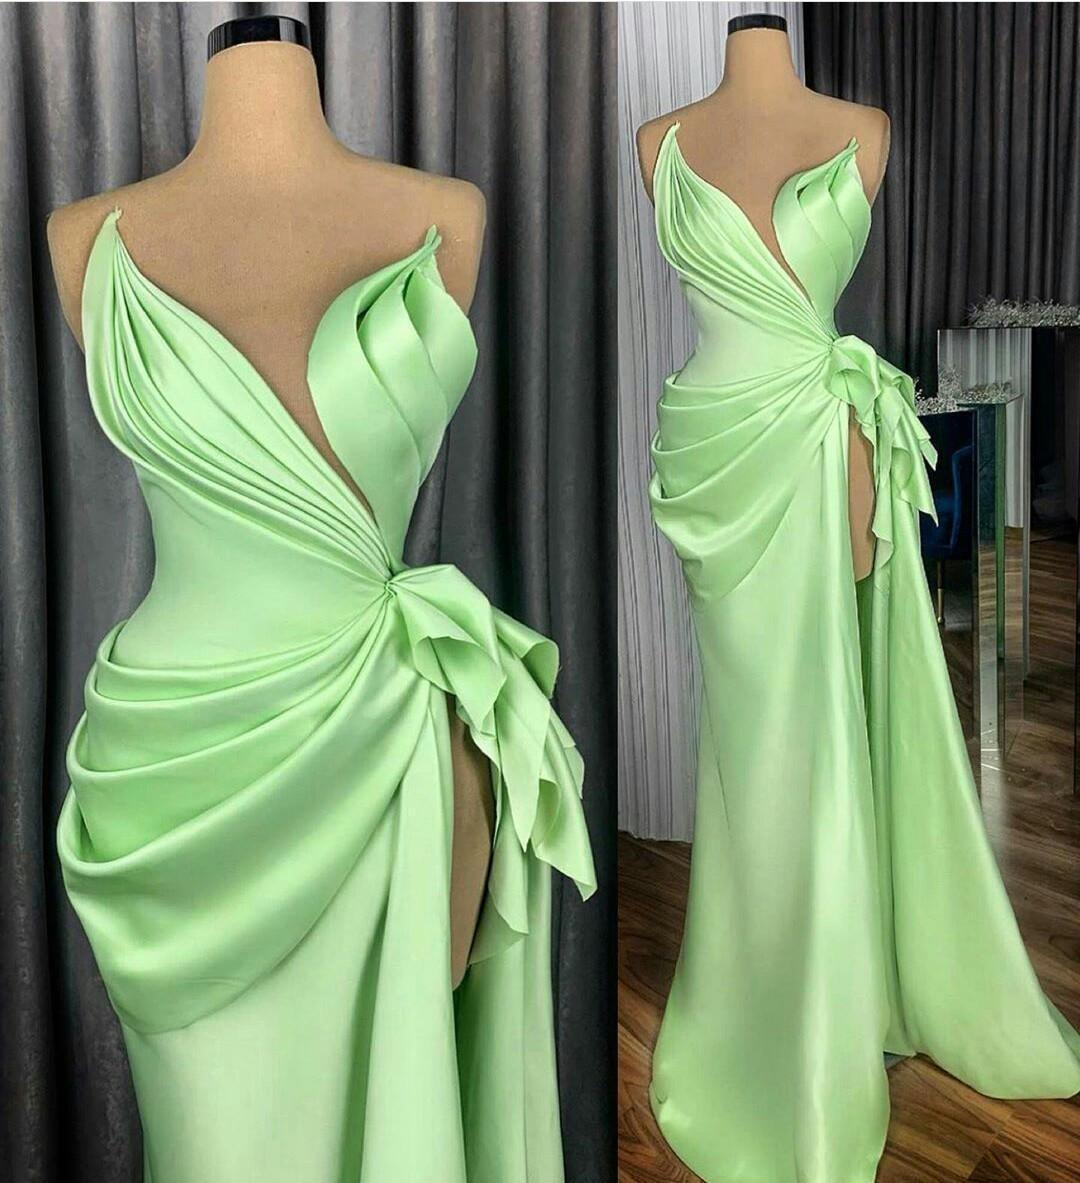 Mint Sheath Prom Dresses Sheer Jewel Neckline robe de soiree Ruffles High Side Split Evening Dress Custom Made Formal Party Gowns